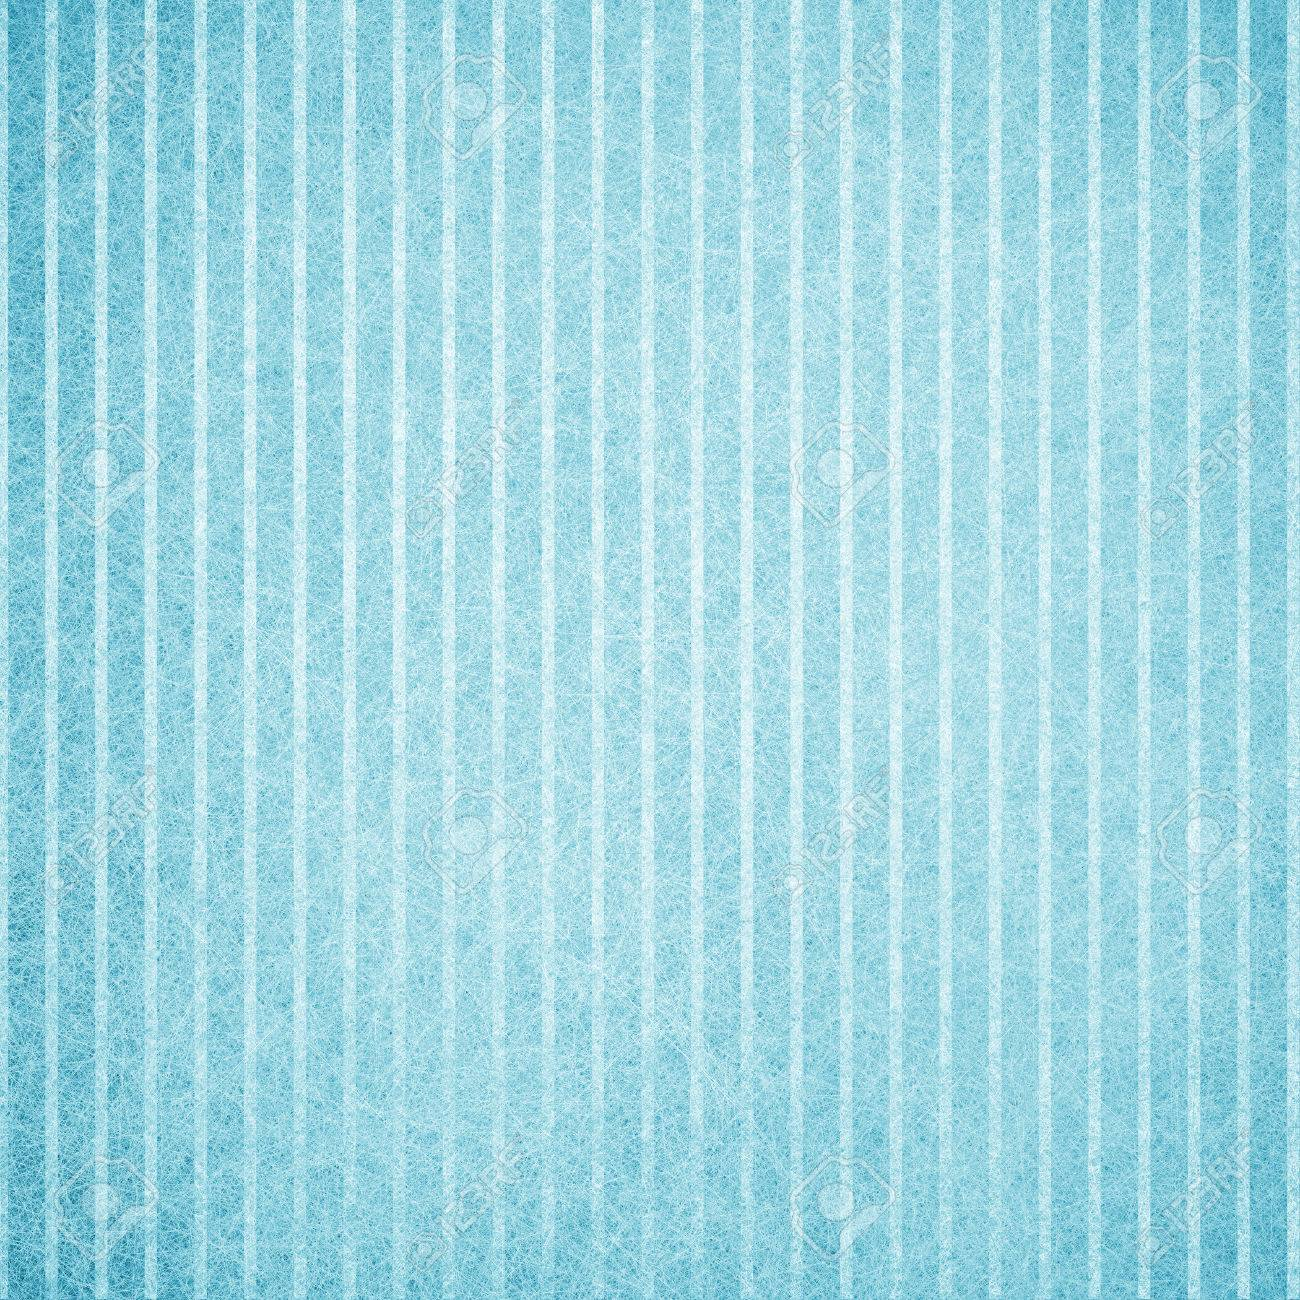 cute blue and white striped background pattern with textured material and vintage style - 61881538